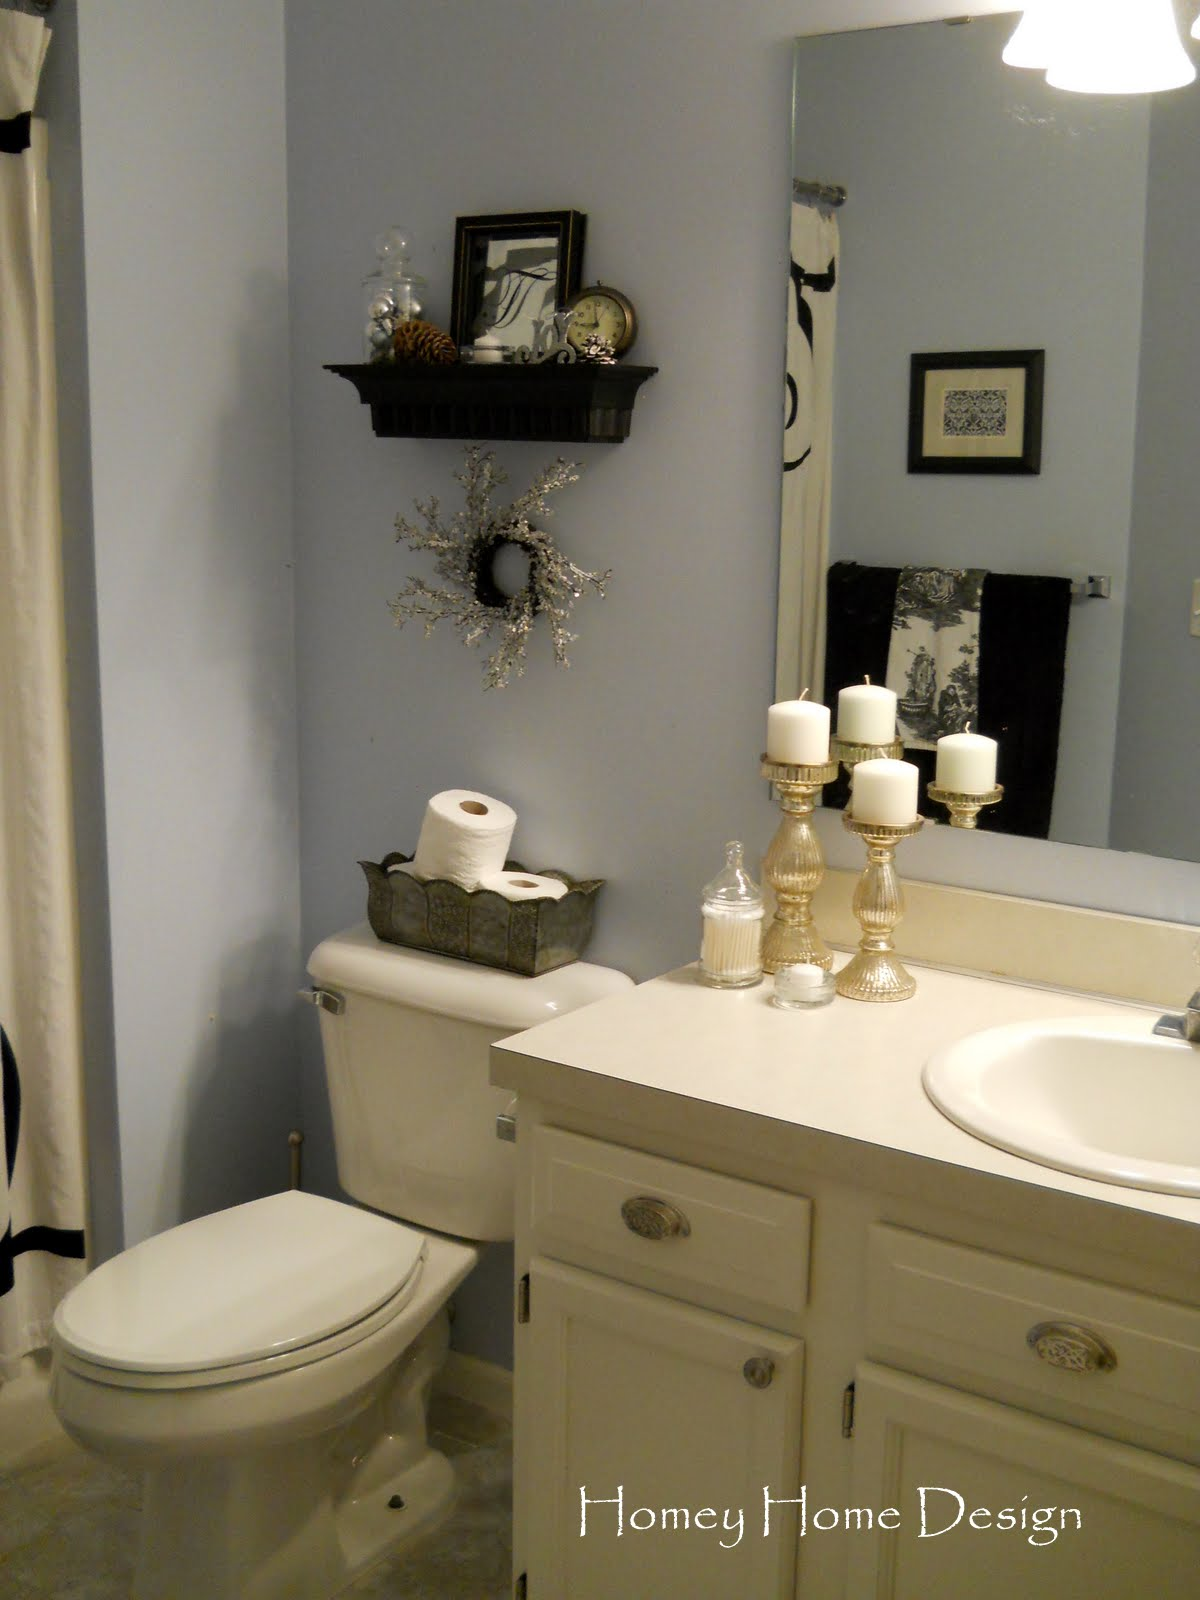 Homey home design christmas in the bathroom for Items for bathroom